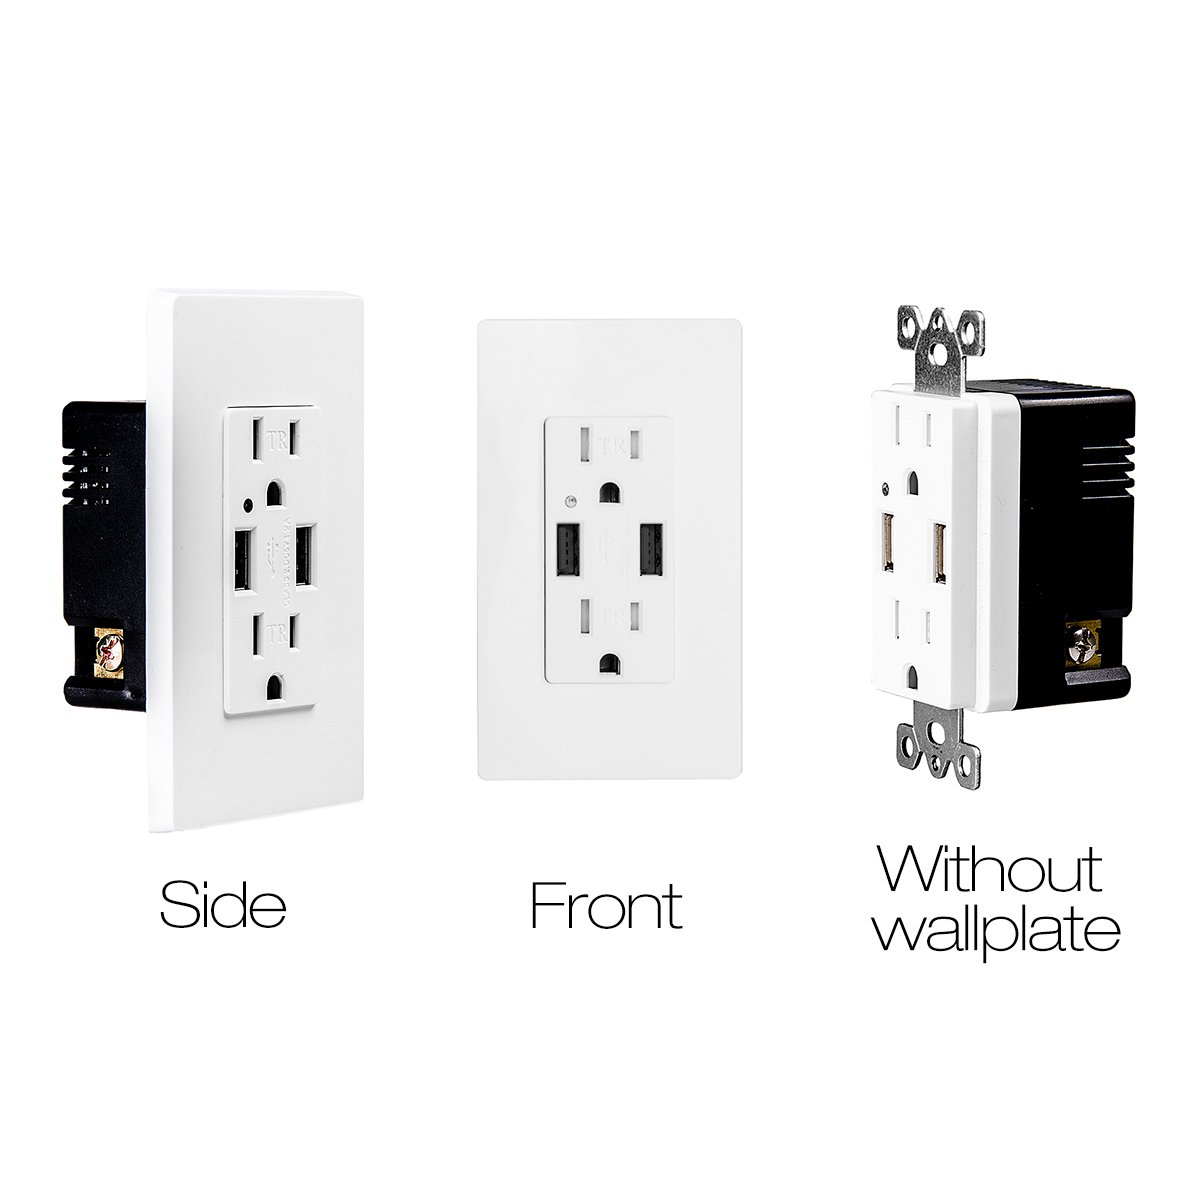 TOPELE High Speed USB Charger Outlet, 4.2a USB Wall Charger with 15A Tamper-Resistant Duplex Receptacle, Child Proof Safety, Wall Plates Included, UL Listed, White by TOPELE (Image #8)